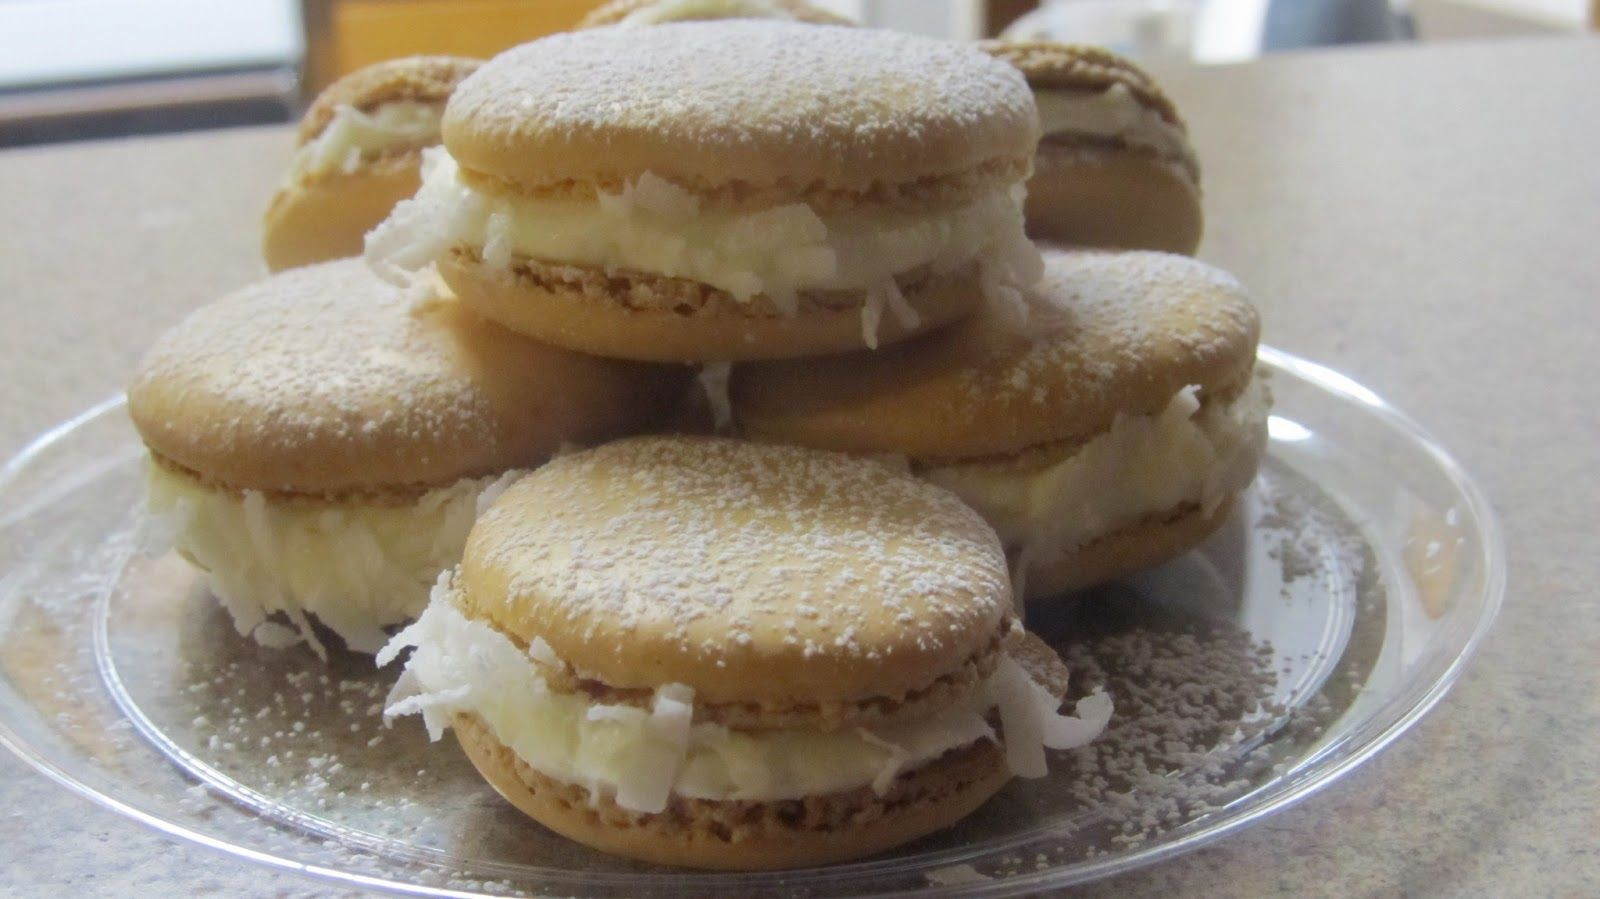 My Pina Colada French Macarons | Turning my hidden passion into a possible future!